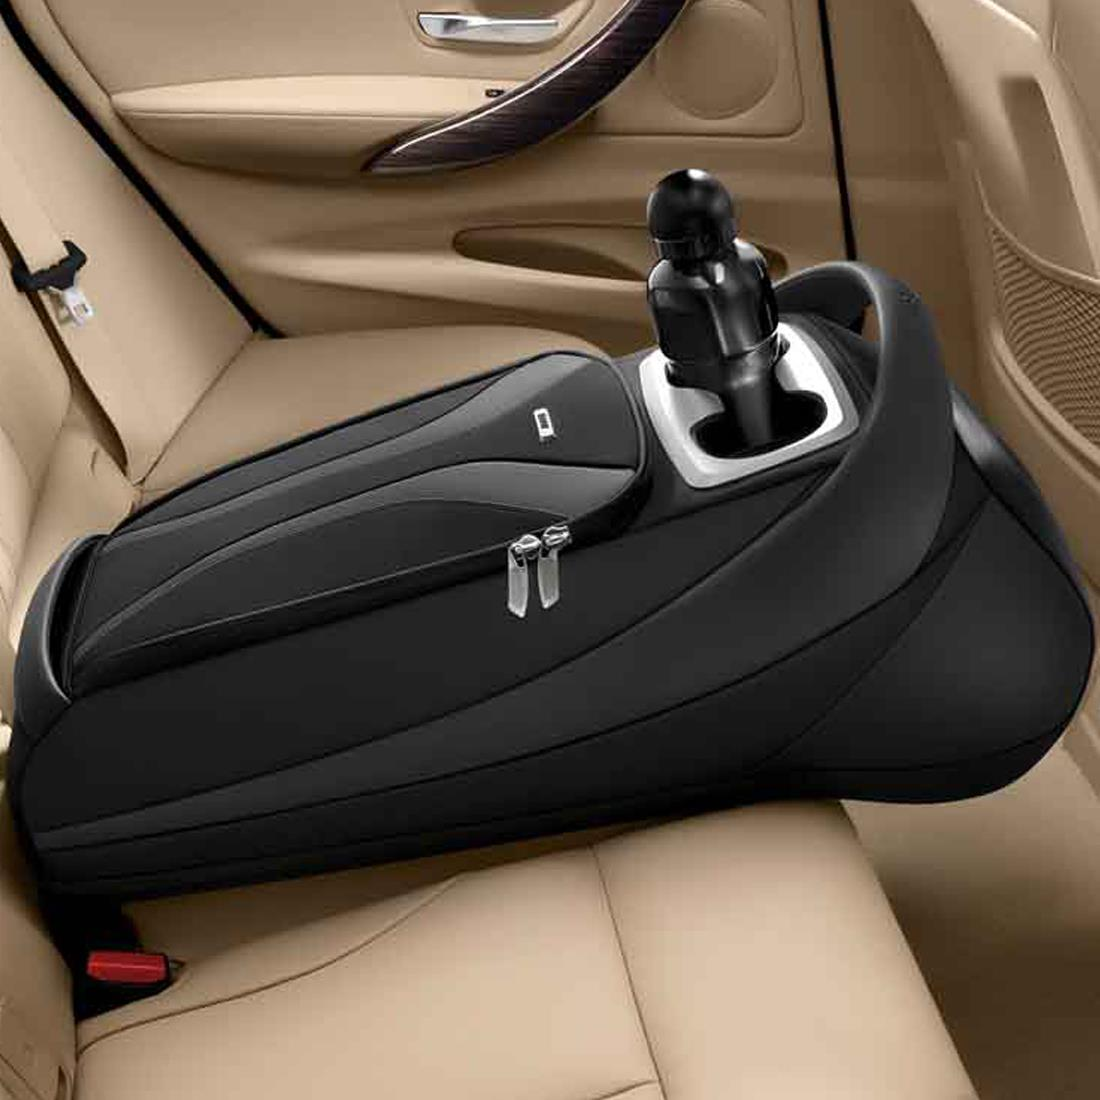 BMW Rear Storage Bag, Black